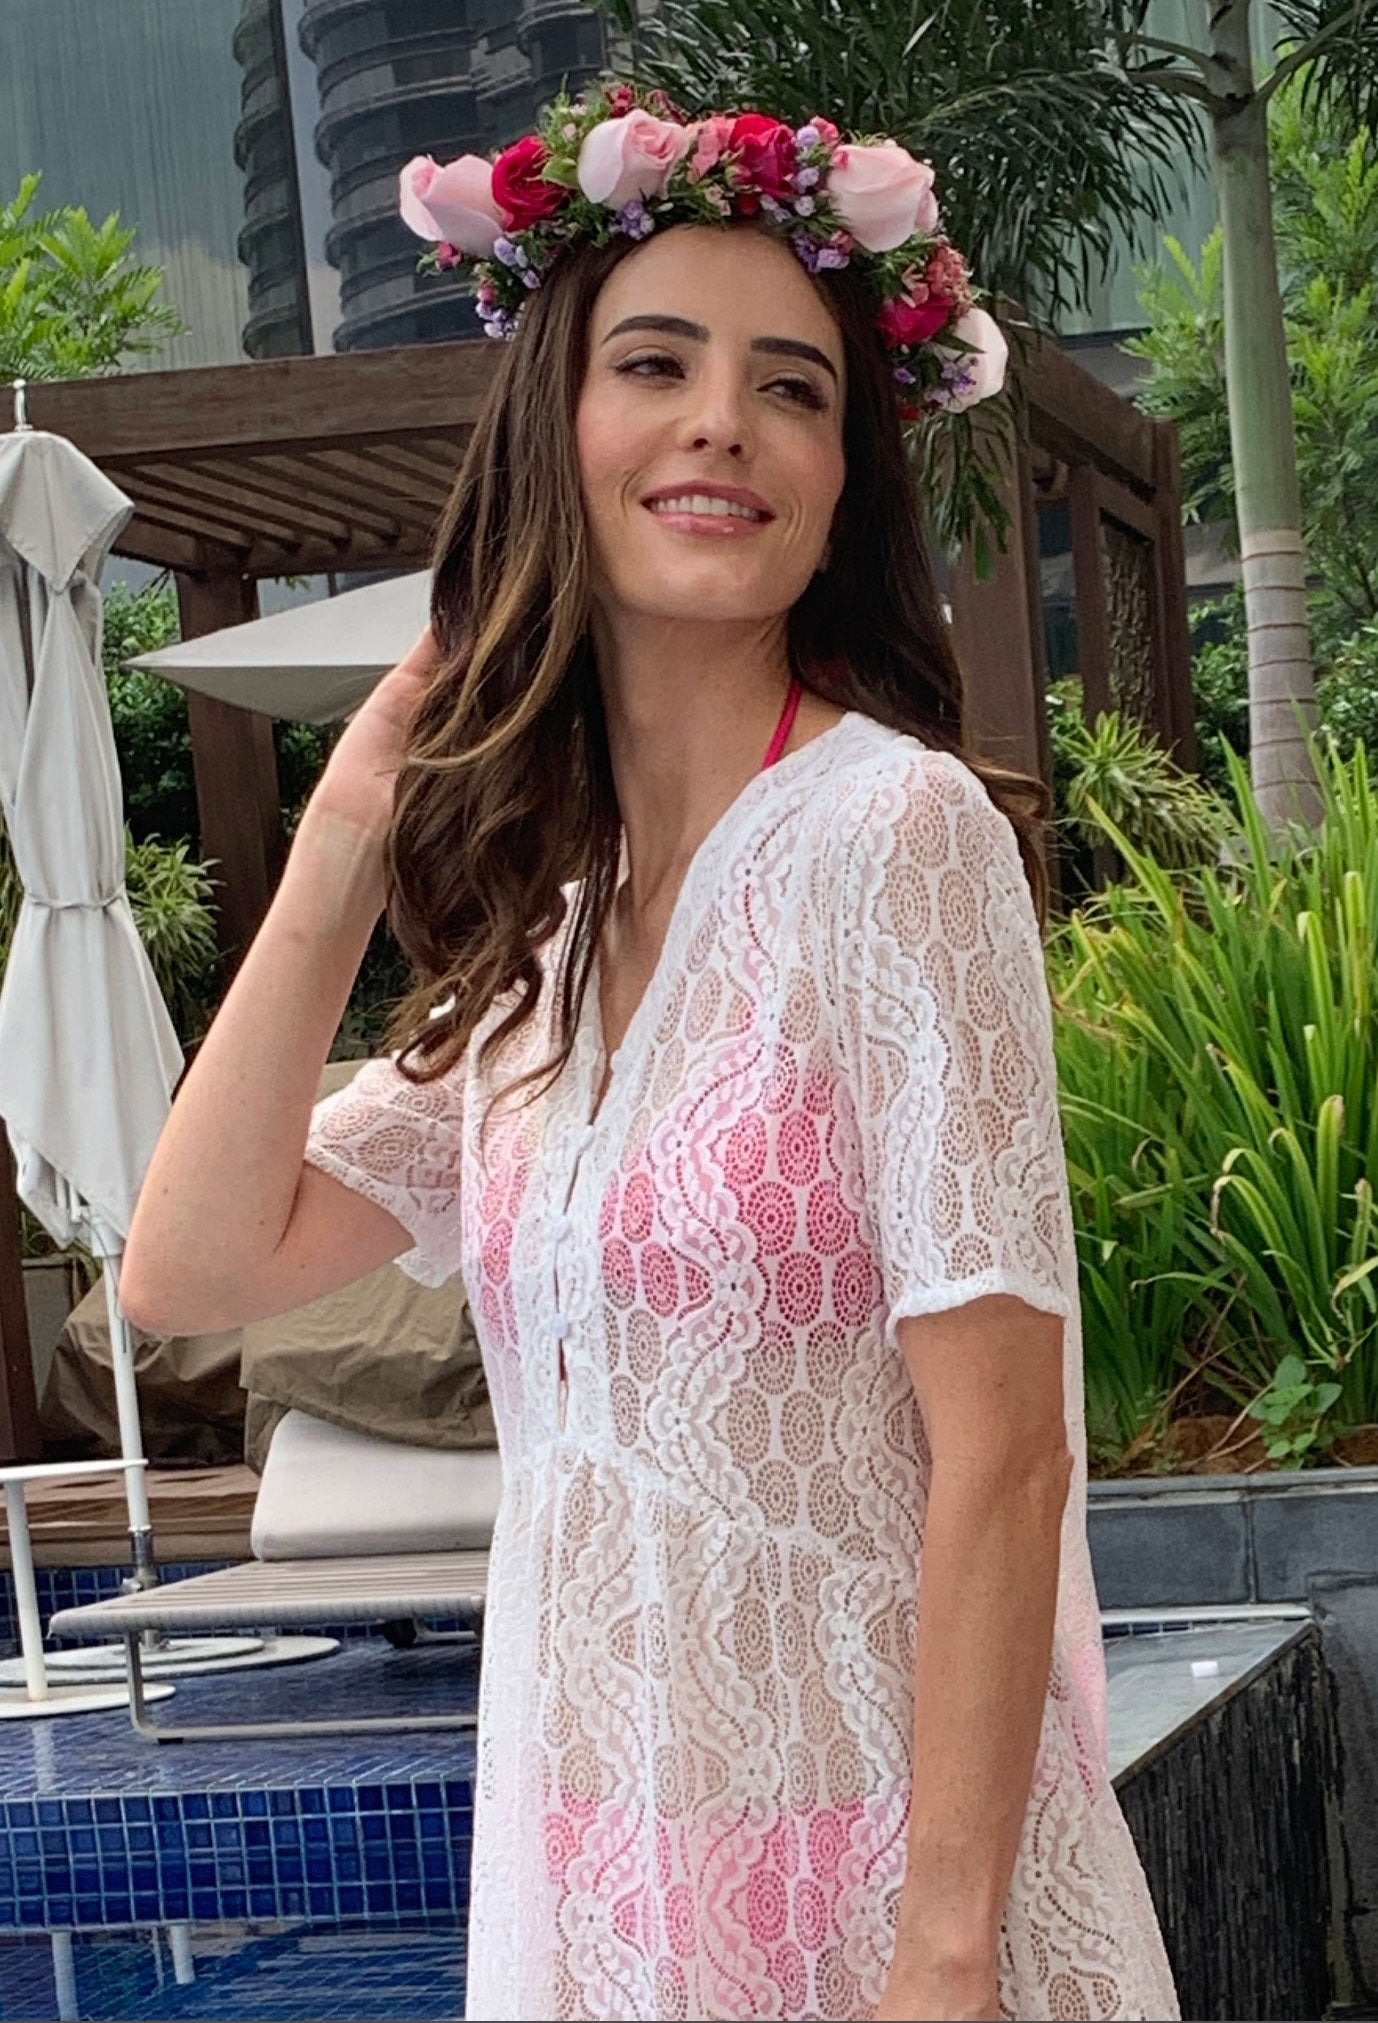 Acqua Bonita white beach cover up dress in lace. Resort wear fashion.